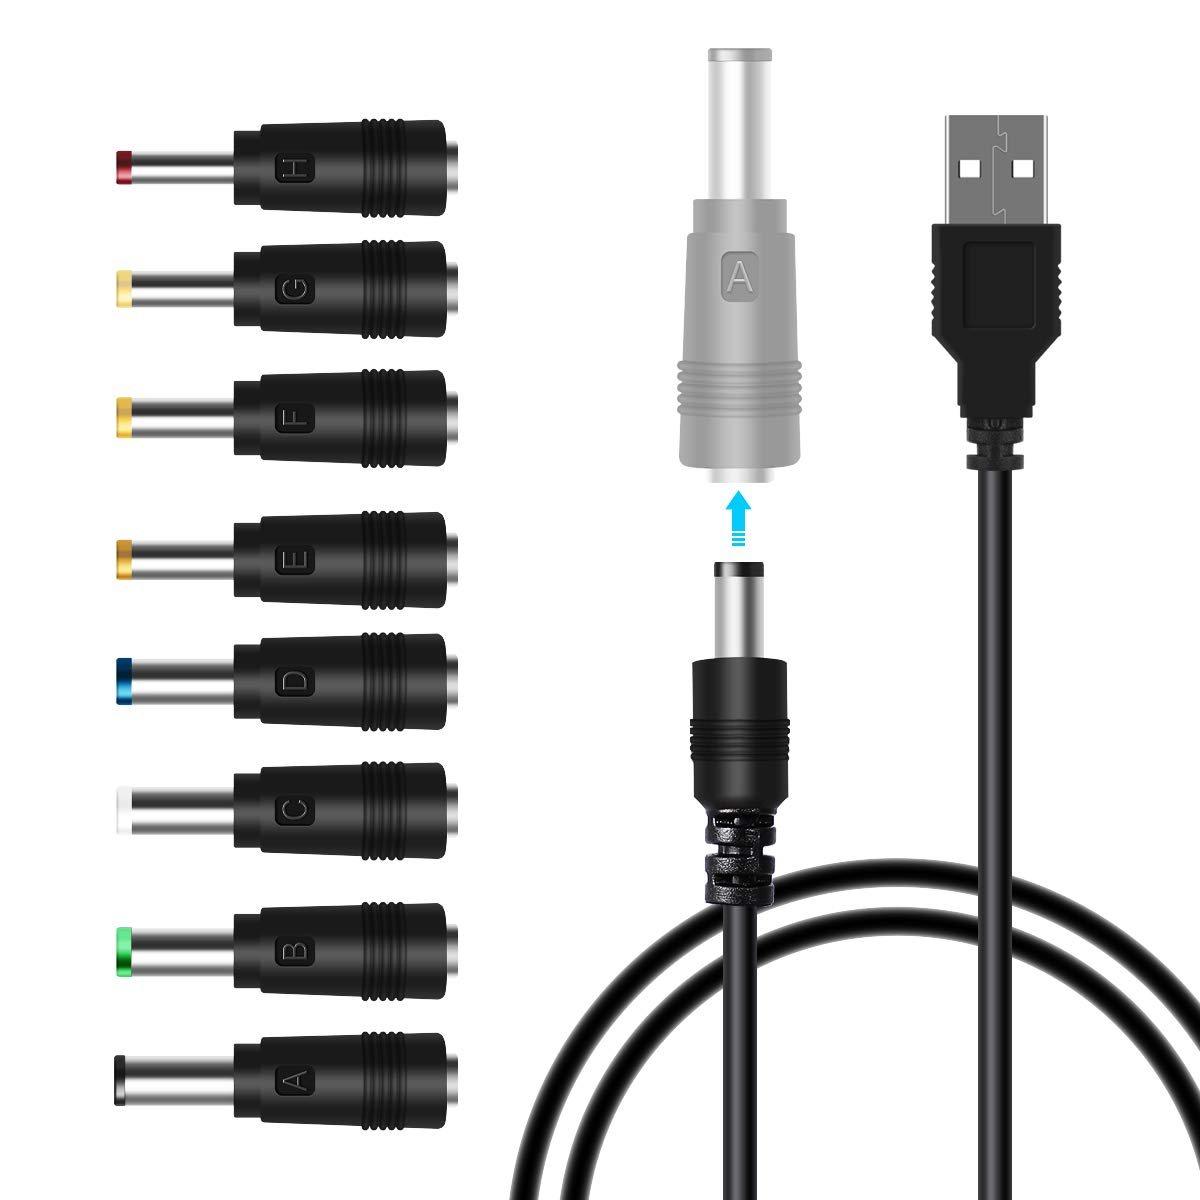 LANMU USB to DC Power Cable,8 in 1 Universal USB to DC Jack Charging Cable Power Cord with 8 Interchangeable Plugs Connectors Adapter for Router,Mini Fan,Speaker and More Electronics Devices